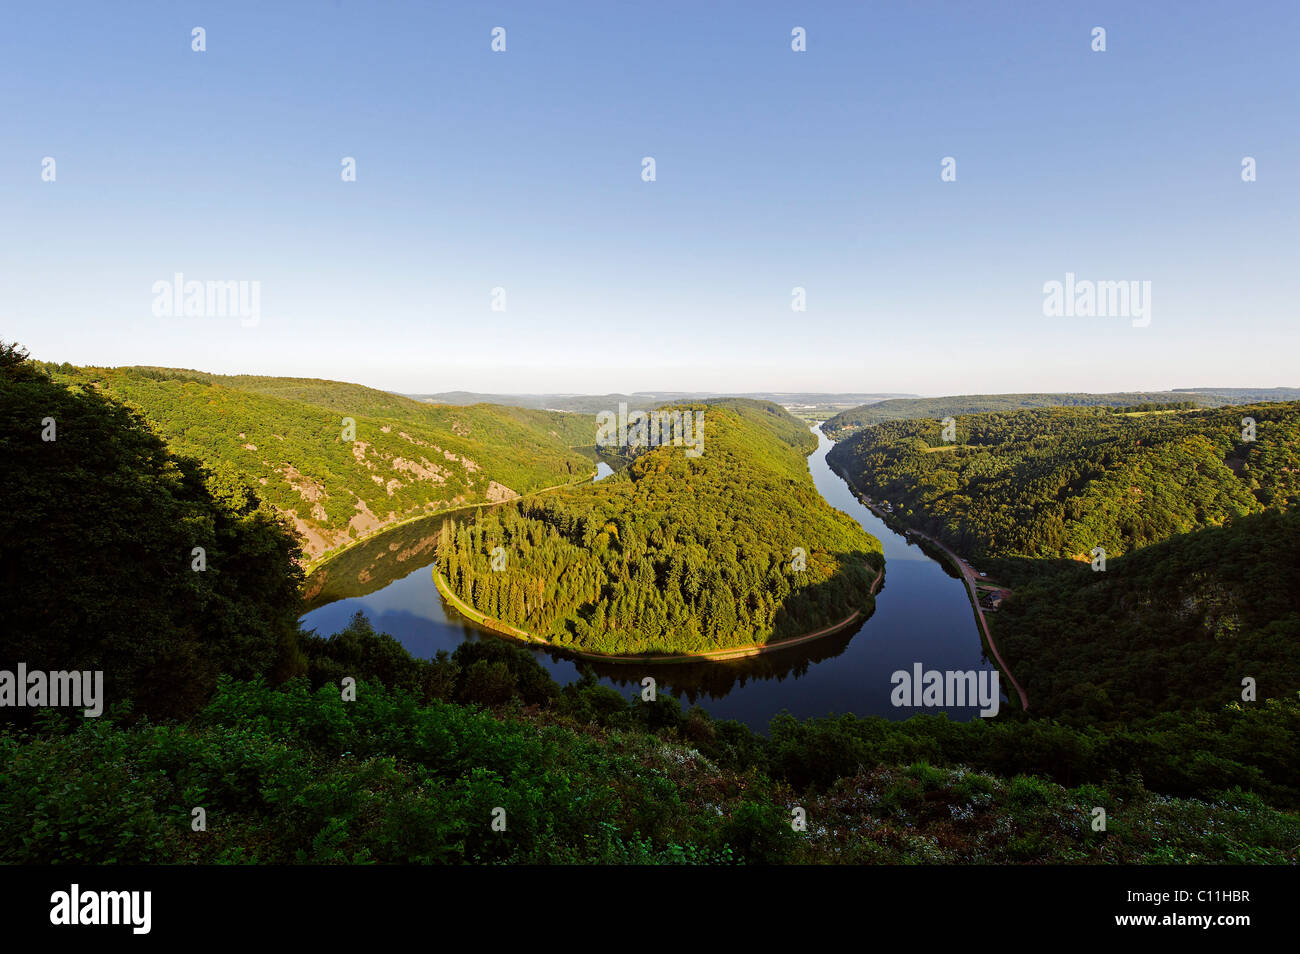 Sinuosity of the river Saar from the viewpoint Cloef near Orscholz, Mettlach, Saarland, Germany, Europe - Stock Image